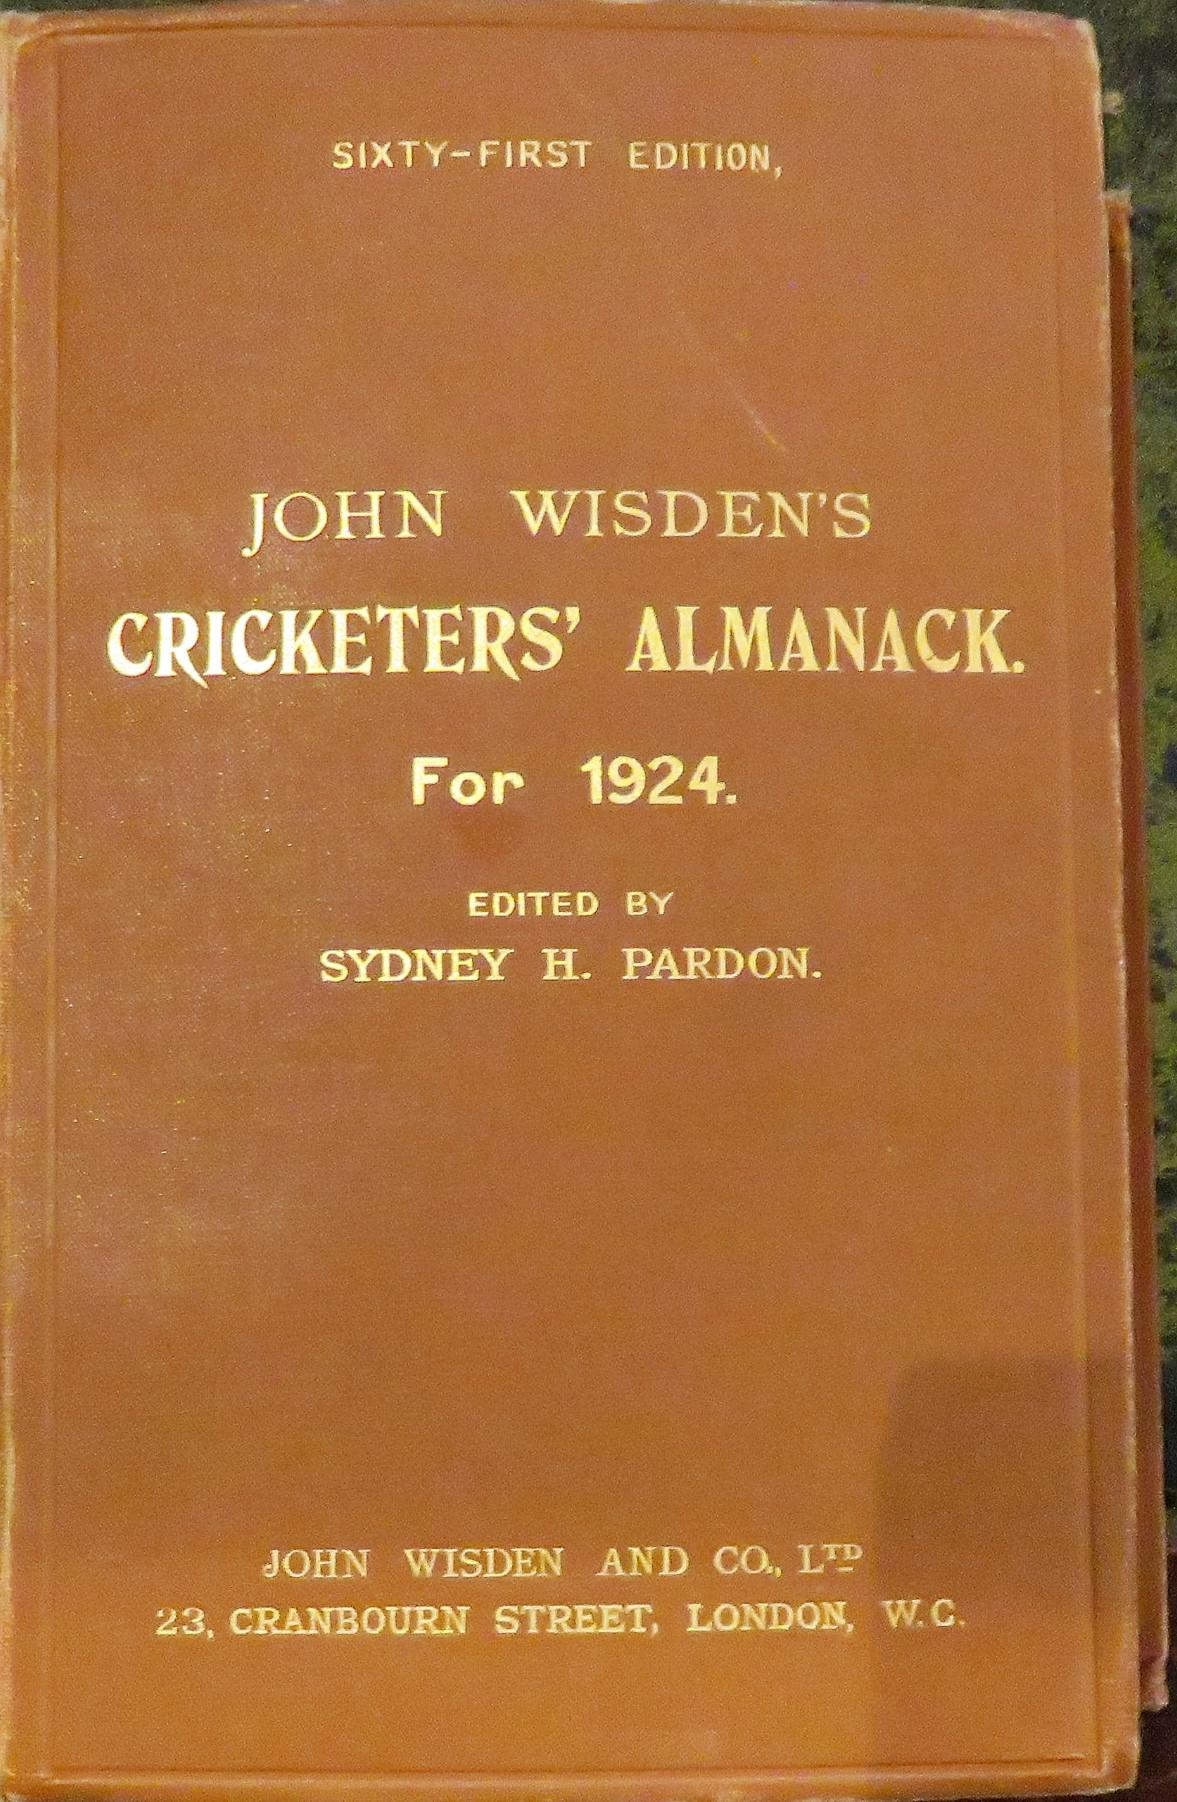 **John Wisden's Cricketers' Almanack For 1924**